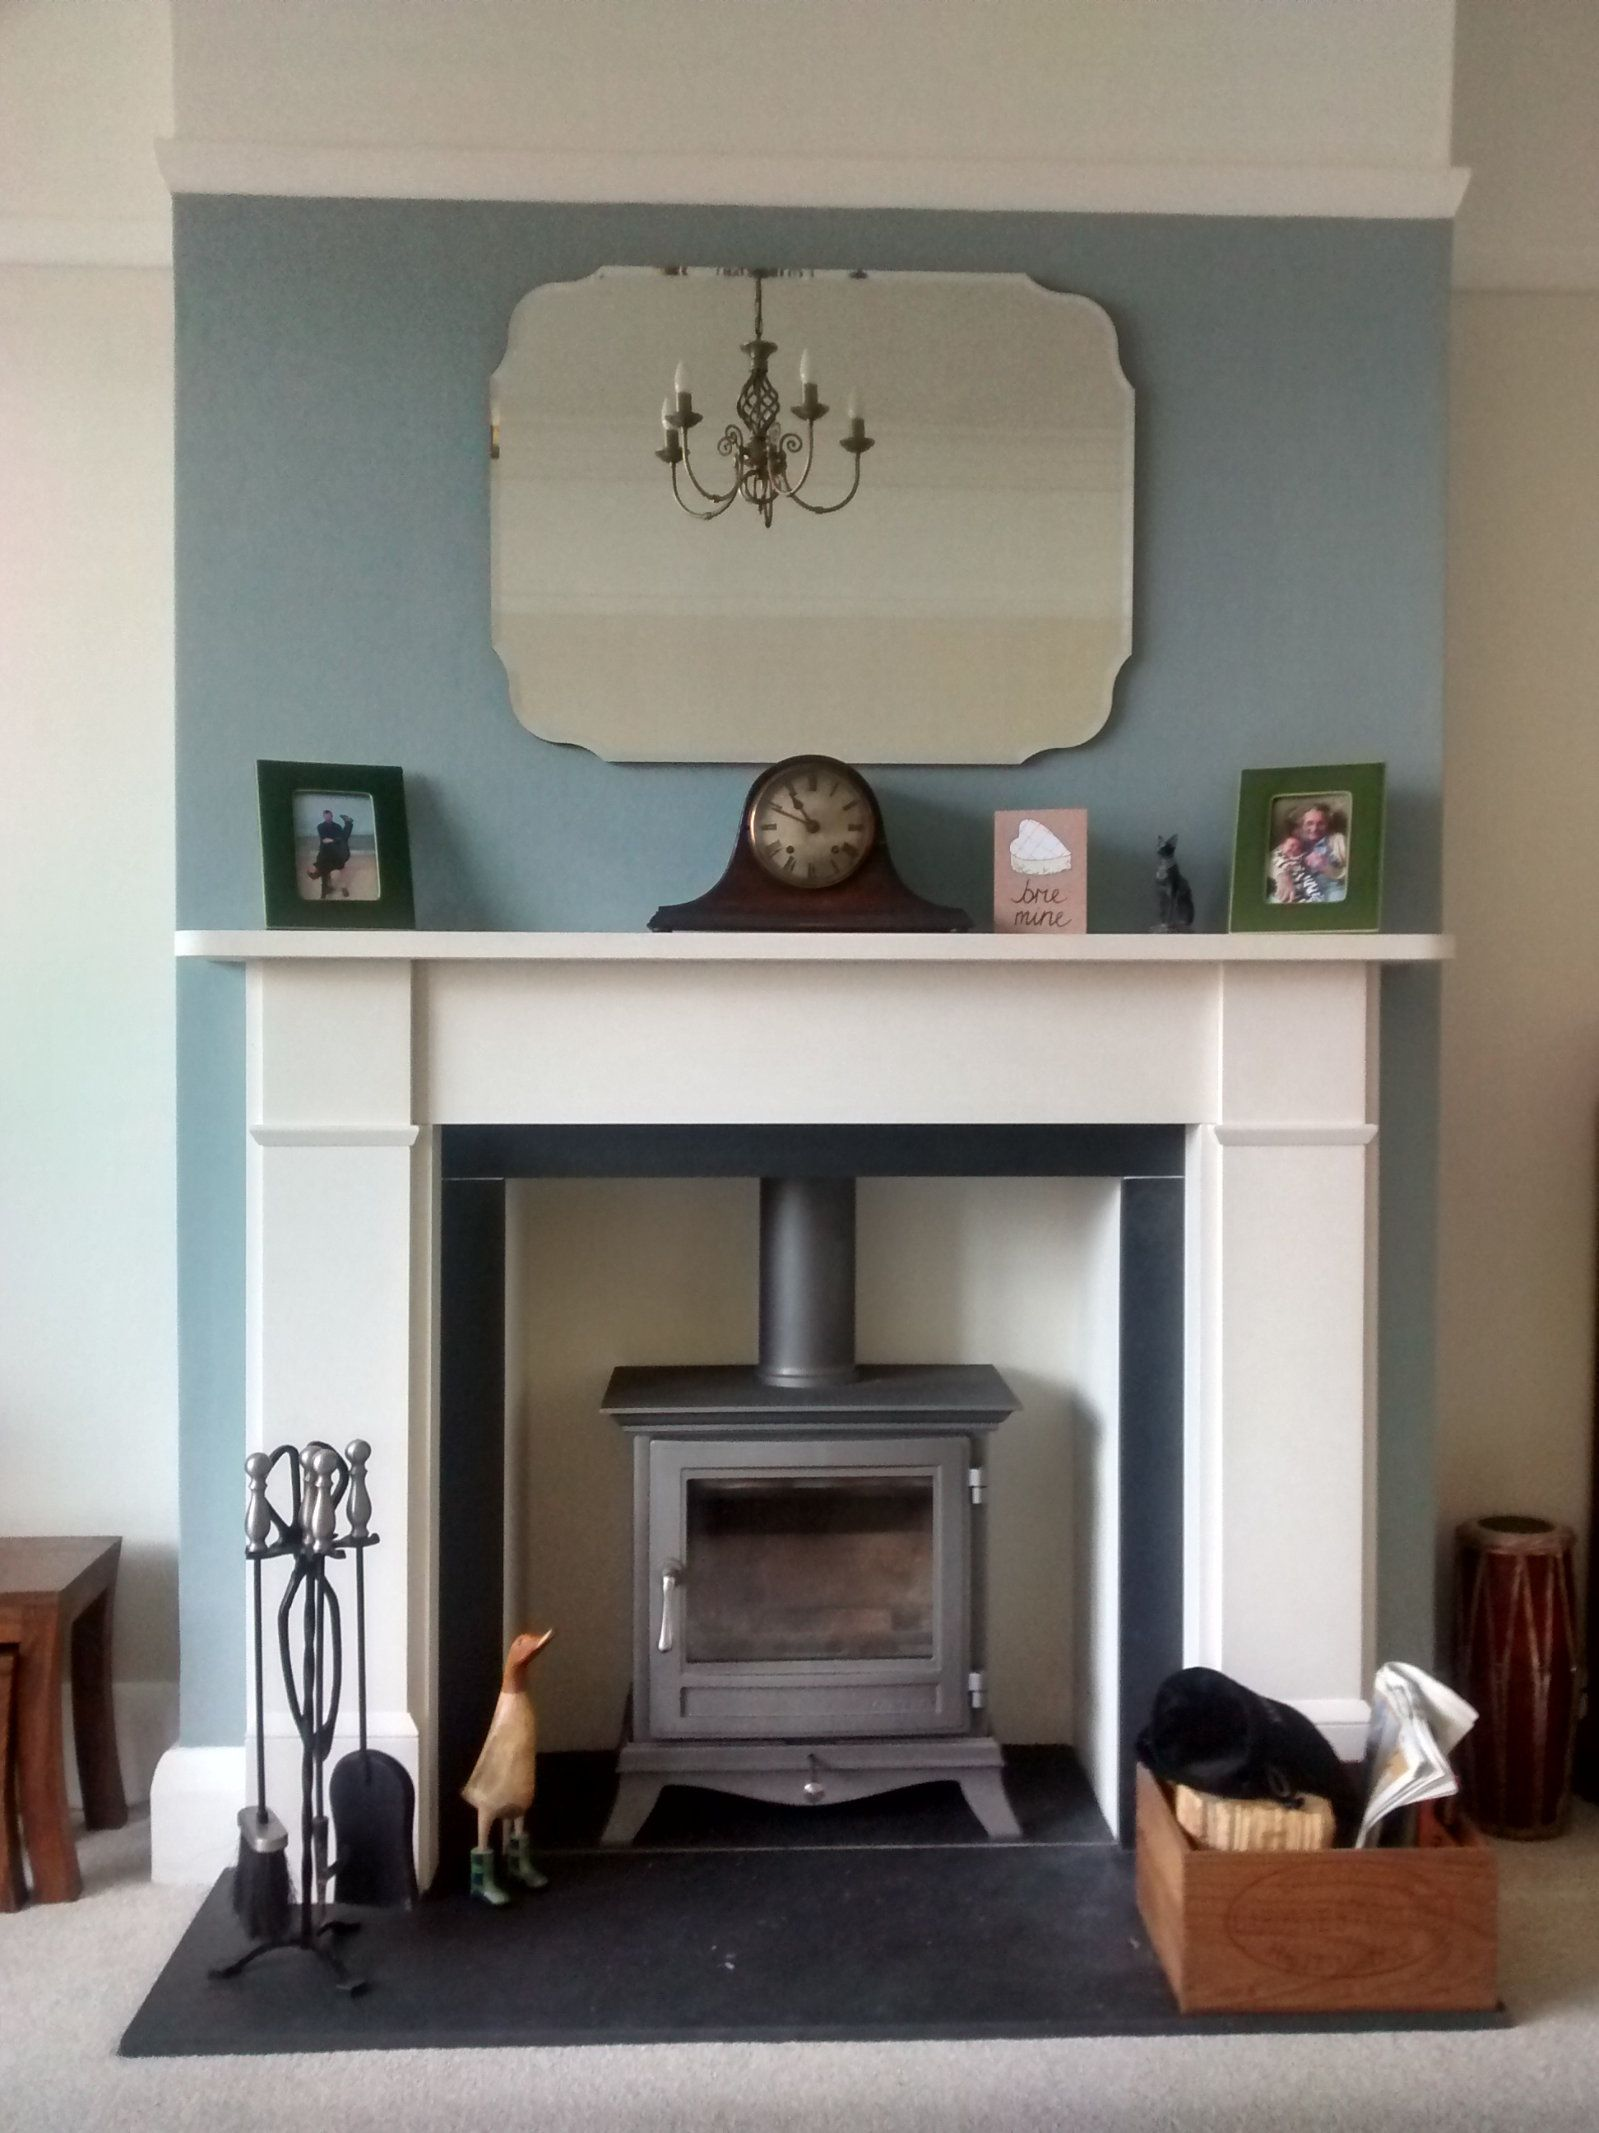 tiled fireplace transformation heart woodburners 1930s house